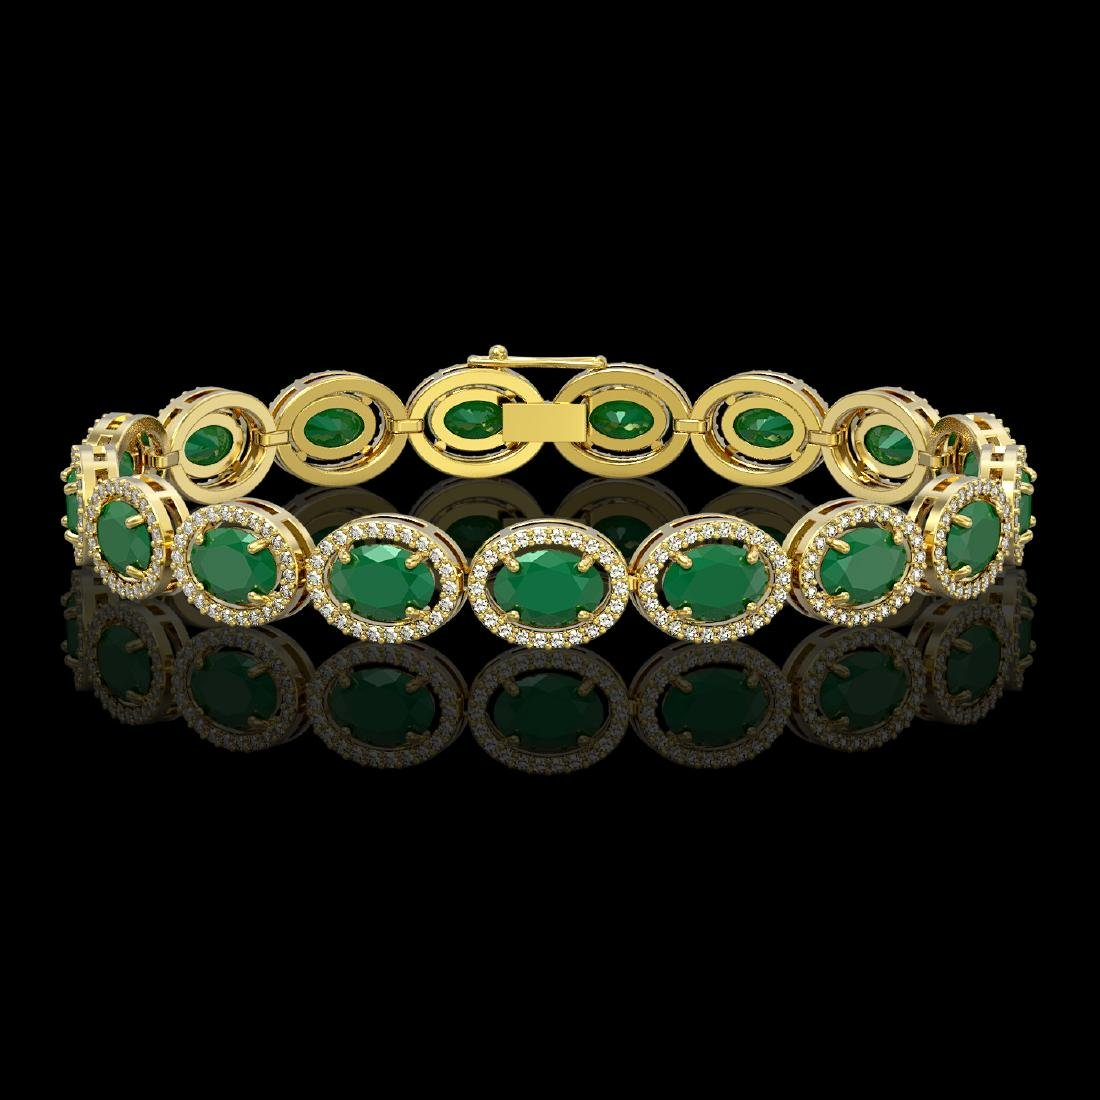 22.89 CTW Emerald & Diamond Halo Bracelet 10K Yellow